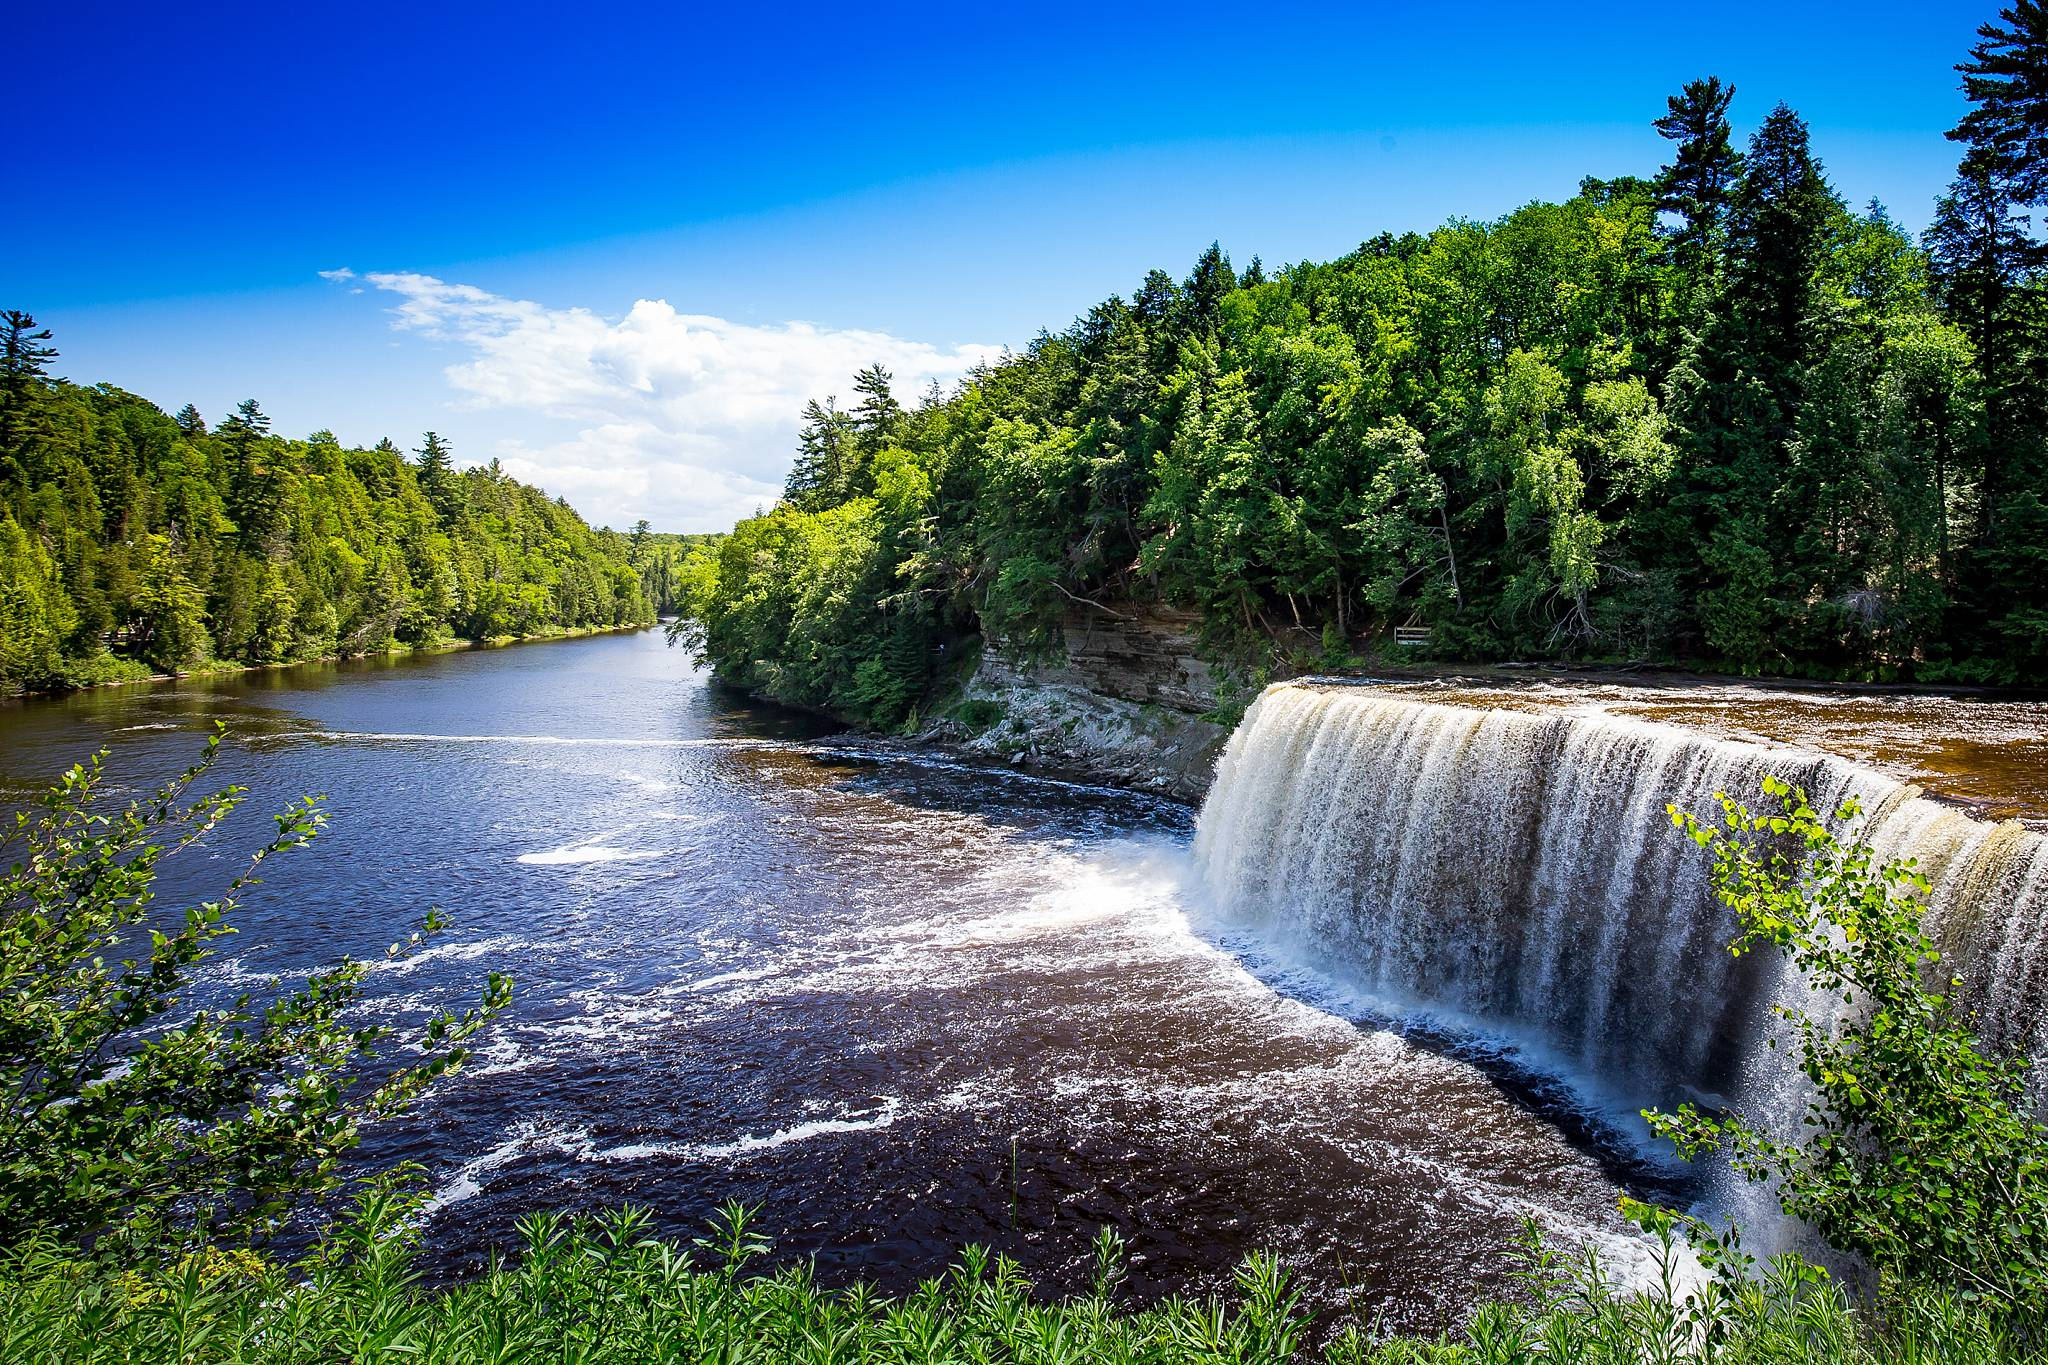 tahquamenon falls michigan Tom Schmidt Photo travel blog